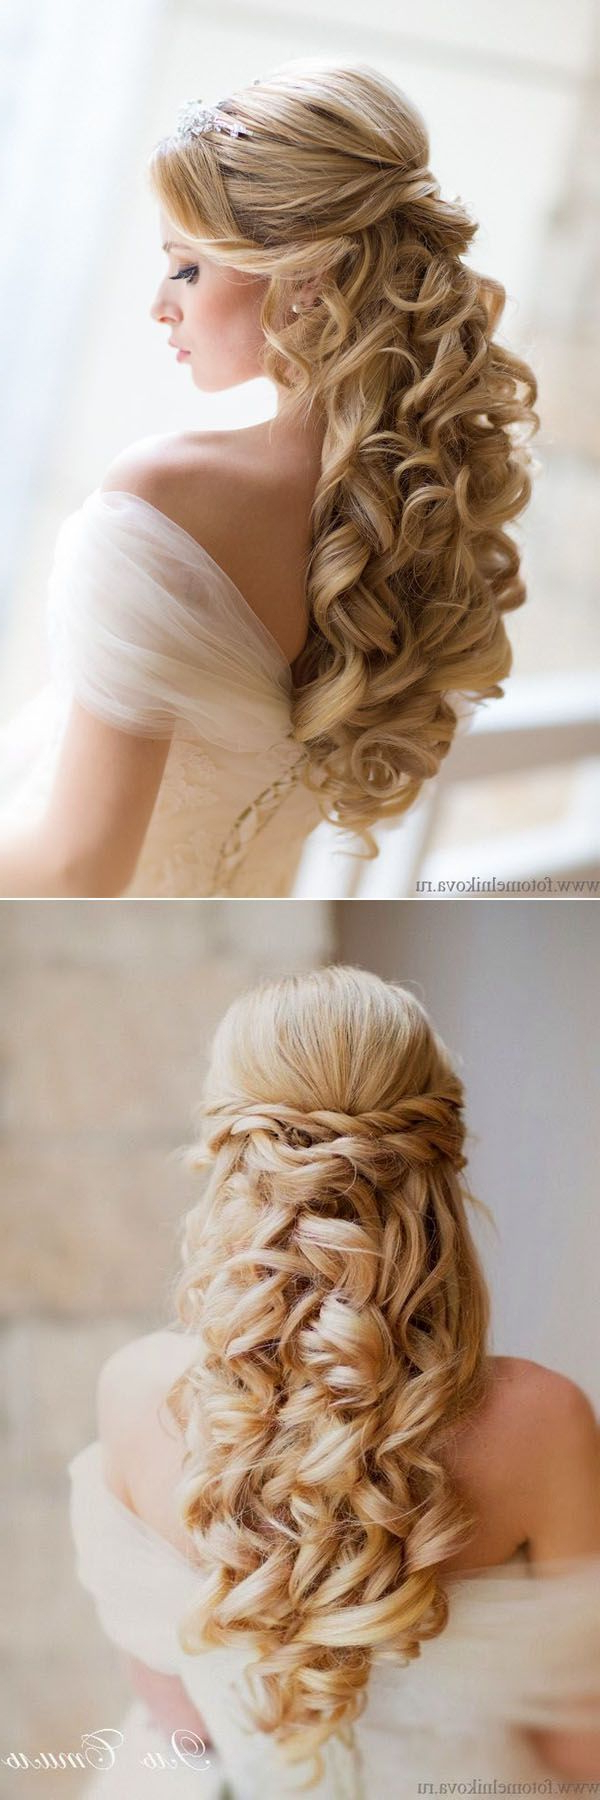 20 Awesome Half Up Half Down Wedding Hairstyle Ideas (View 1 of 20)